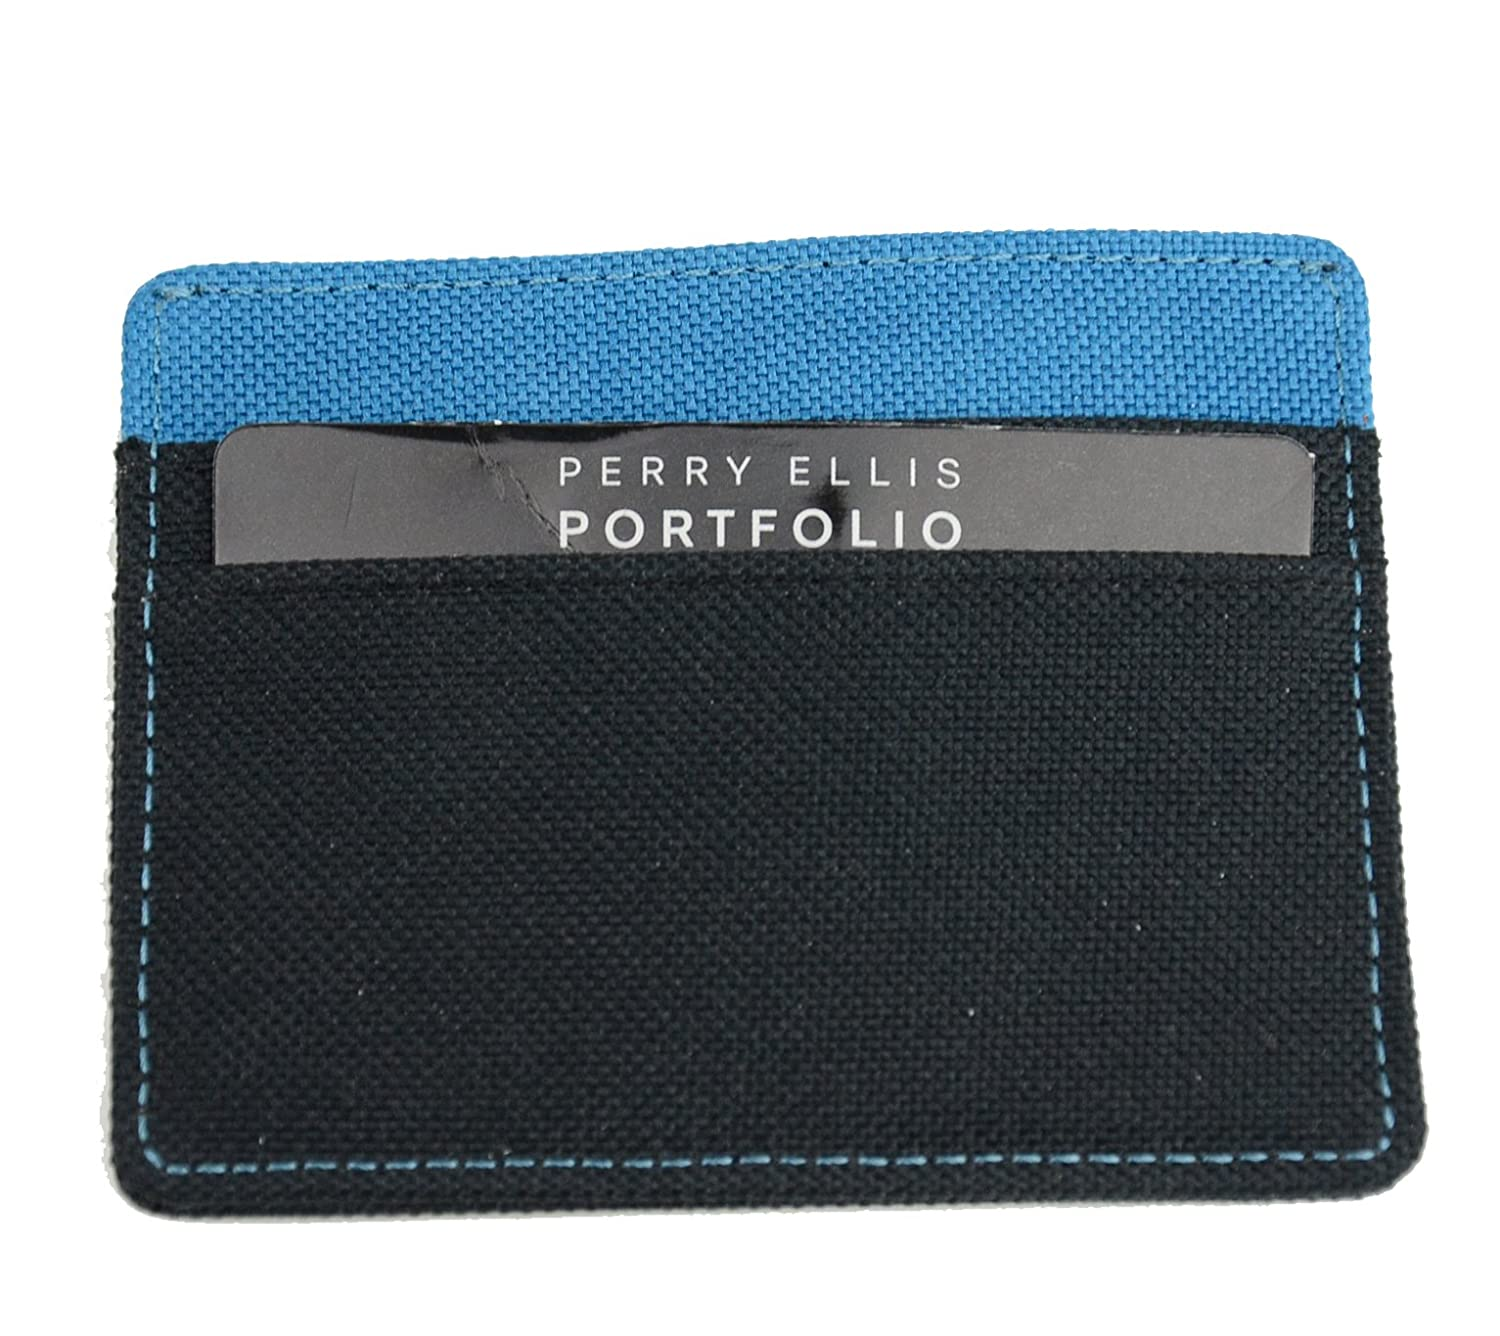 info for ad1a4 09bc2 Perry Ellis Portfolio Gift Men's Fabric Card Case Wallet at Amazon ...